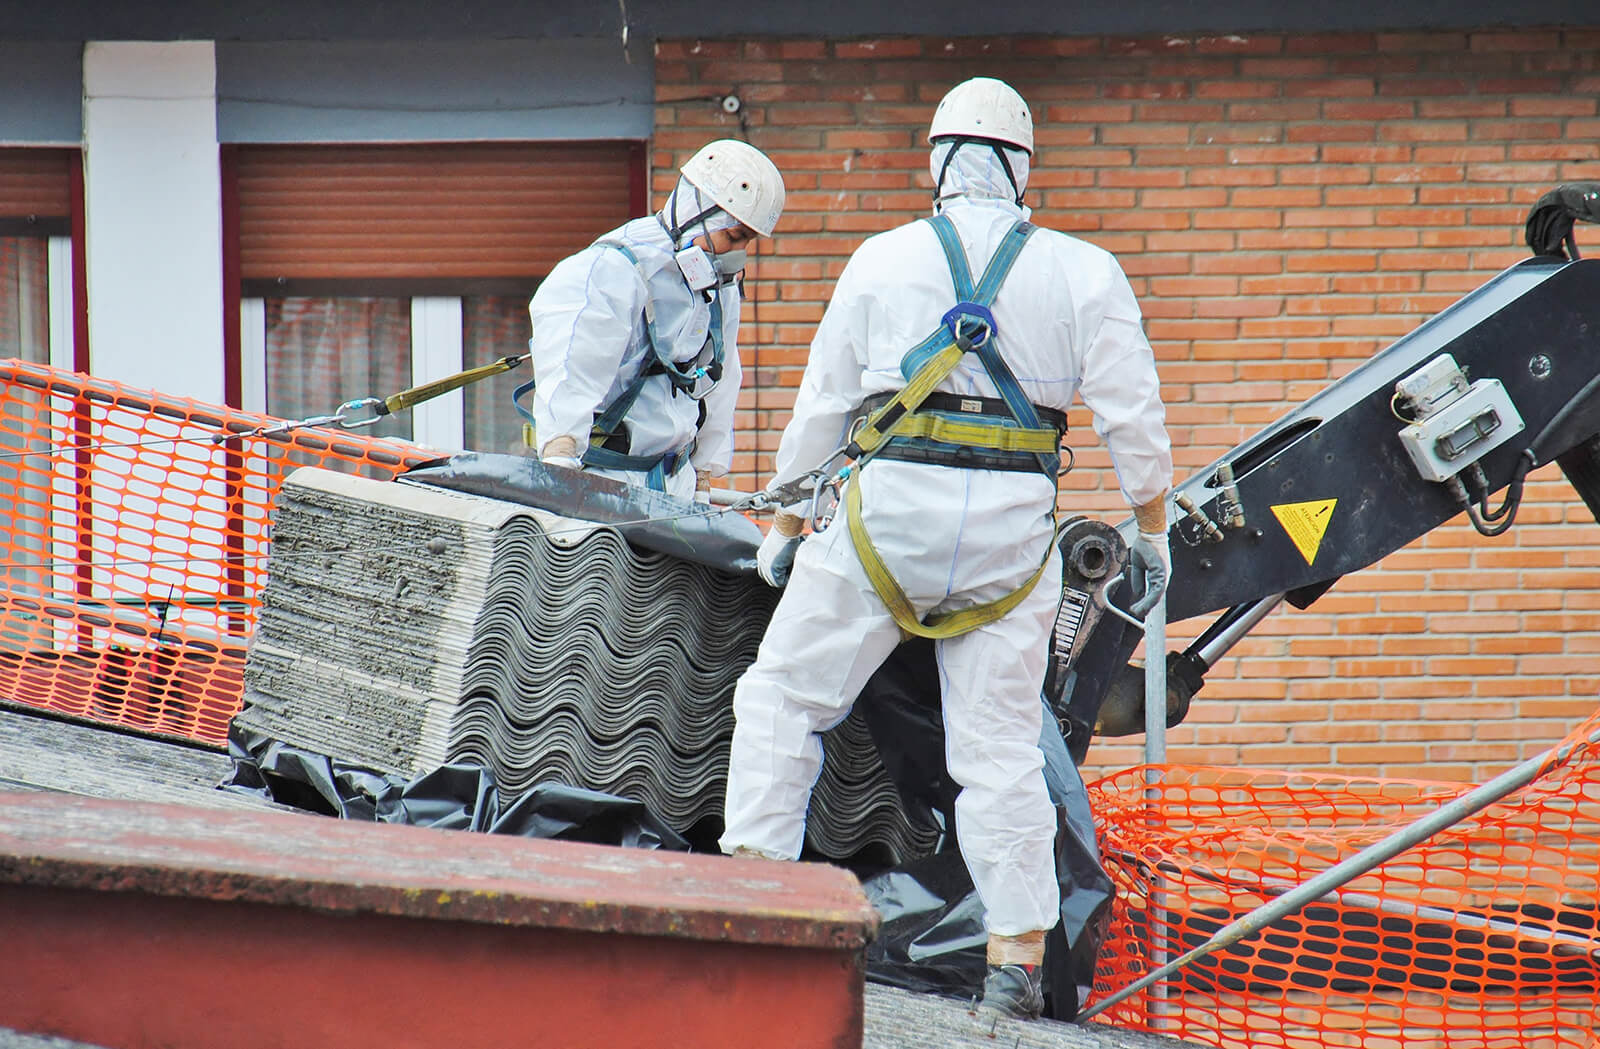 Packing Asbestos onto Crate